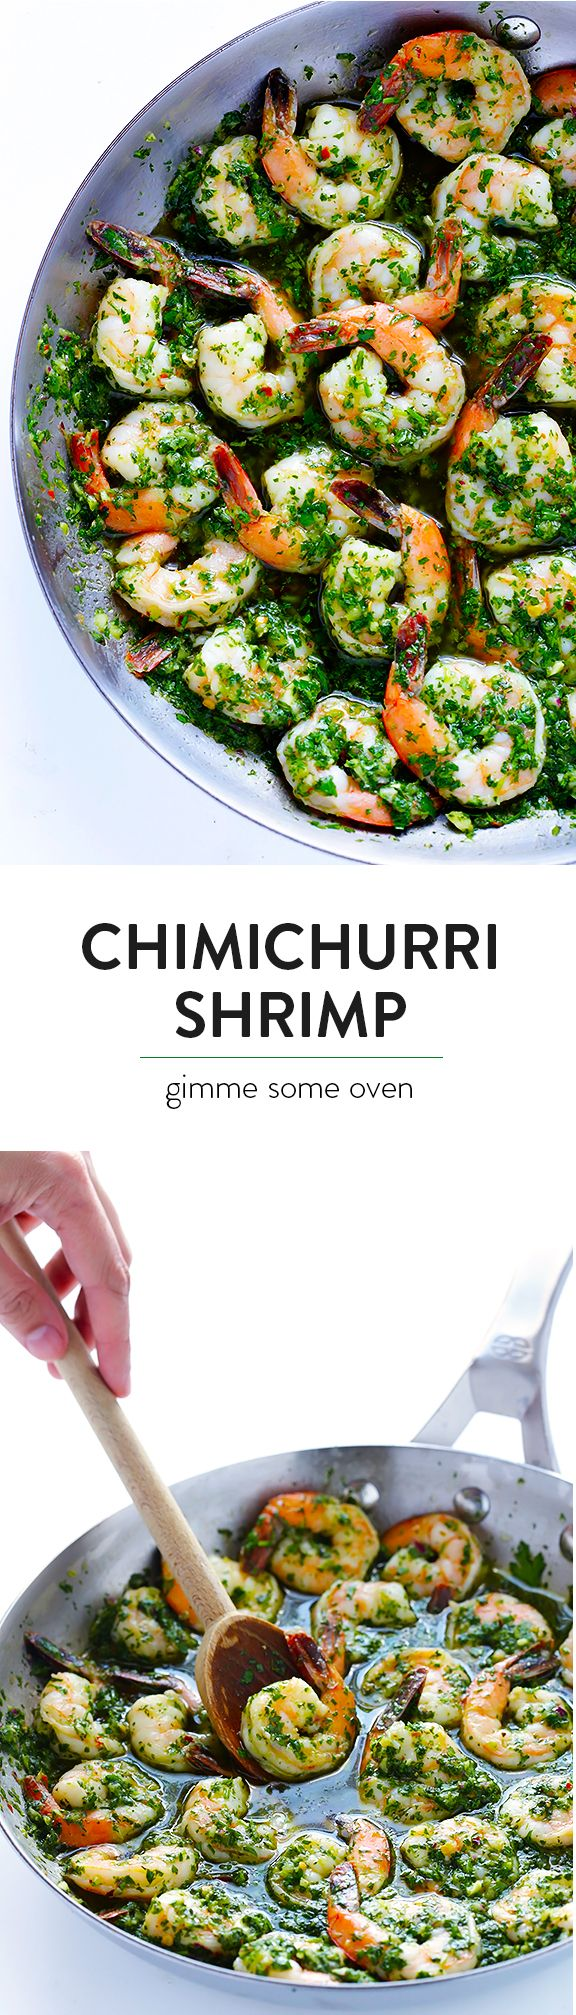 This Chimichurri Shrimp recipe is super quick and easy to make, and packed with fresh and healthy flavors everyone will love! | gimmesomeoven.com